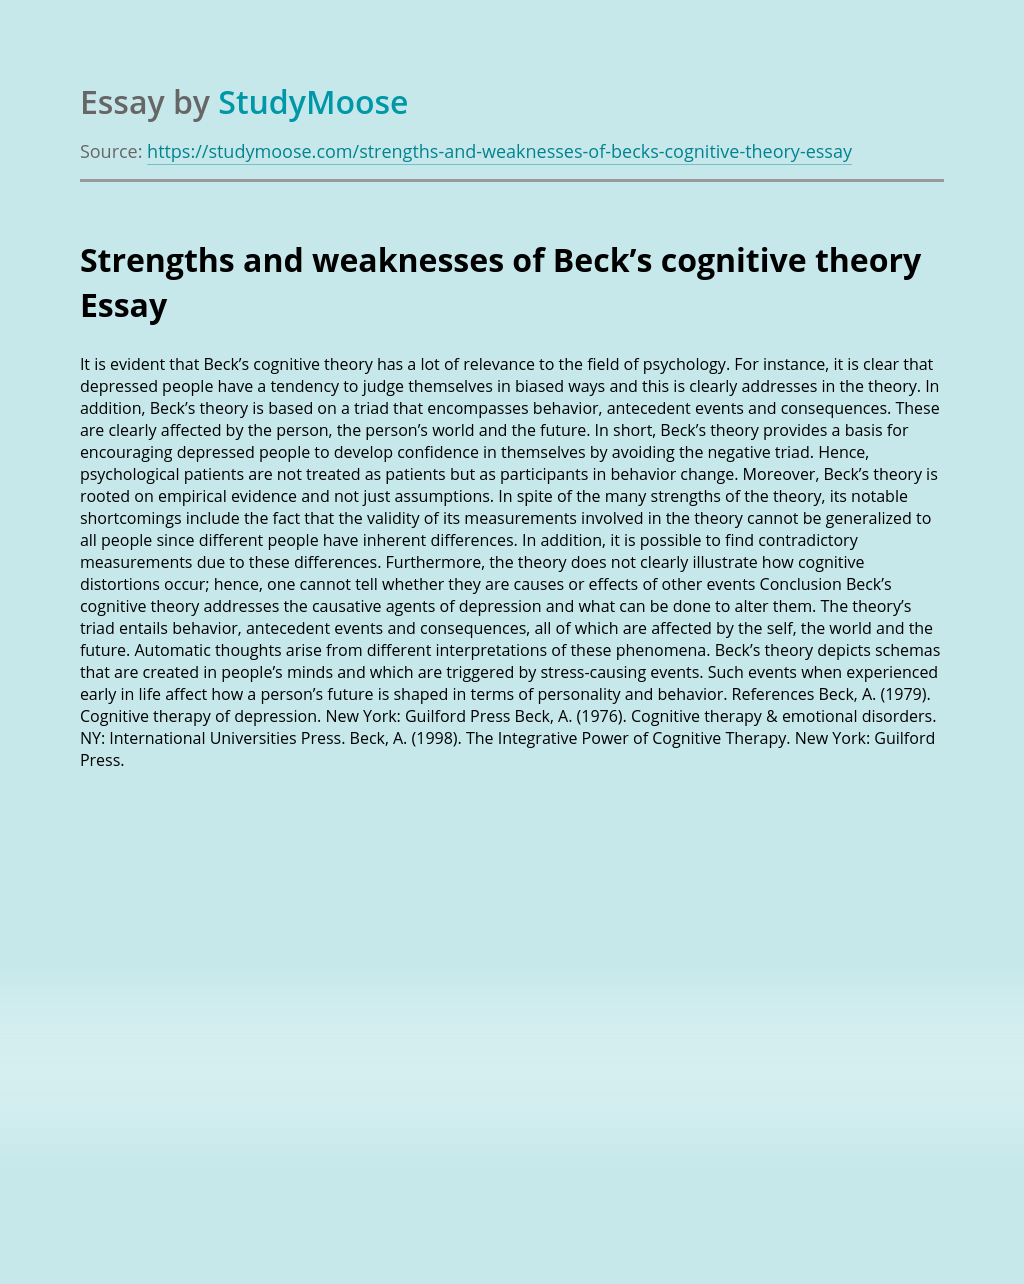 Strengths and weaknesses of Beck's cognitive theory